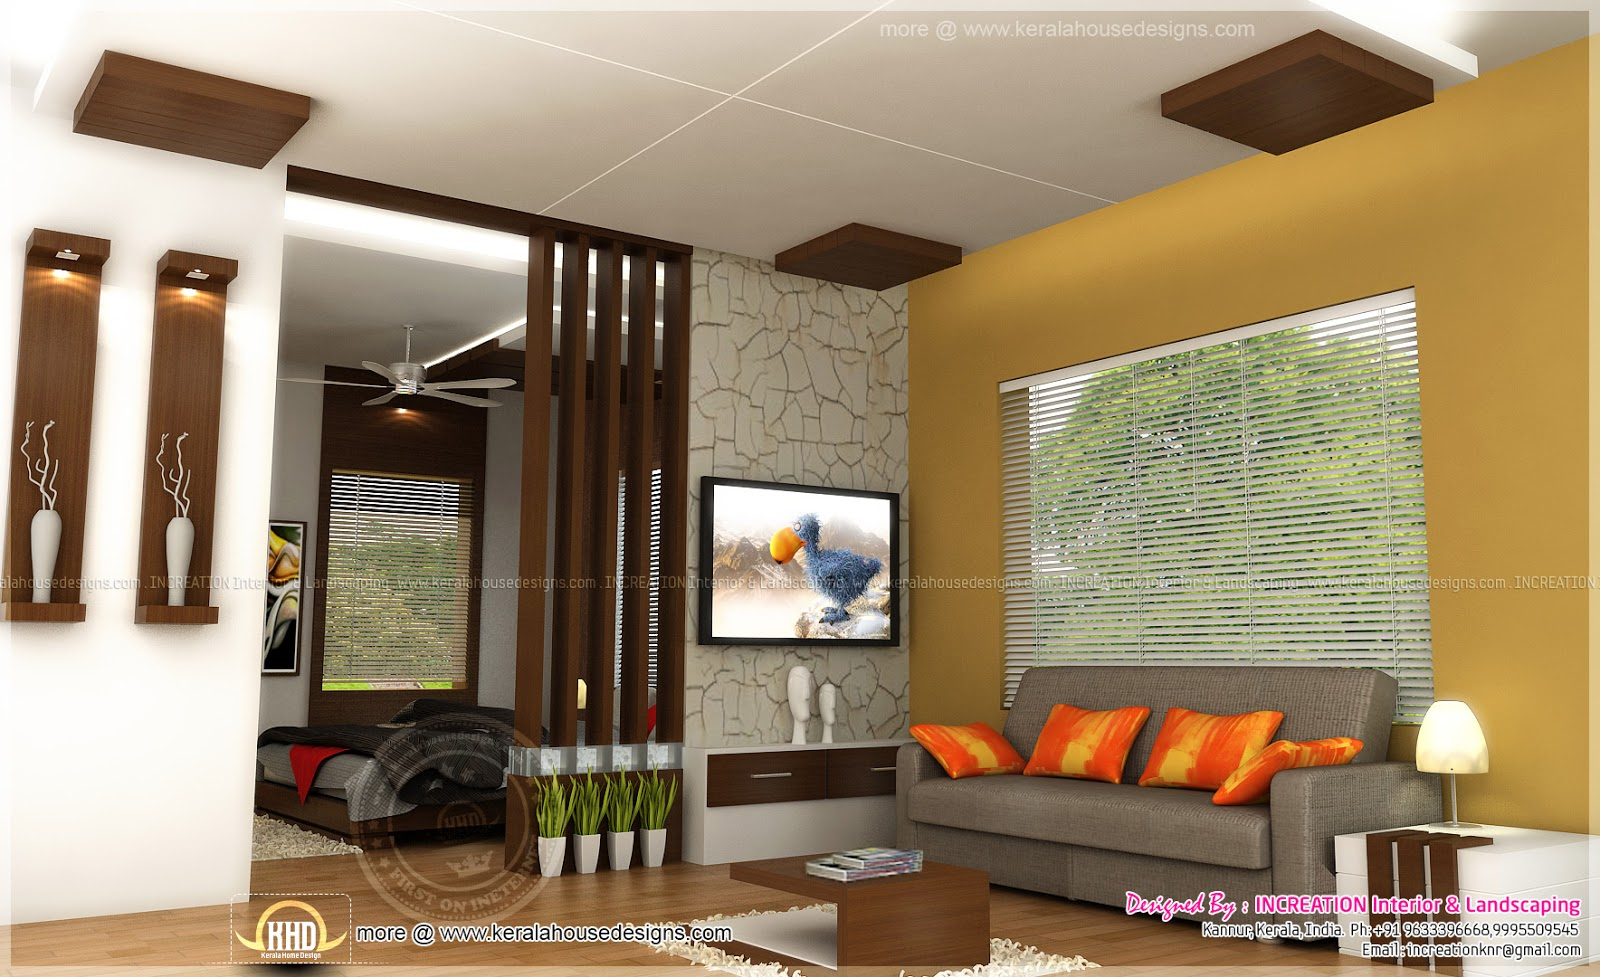 Interior designs from kannur kerala home kerala plans for Sitting room interior